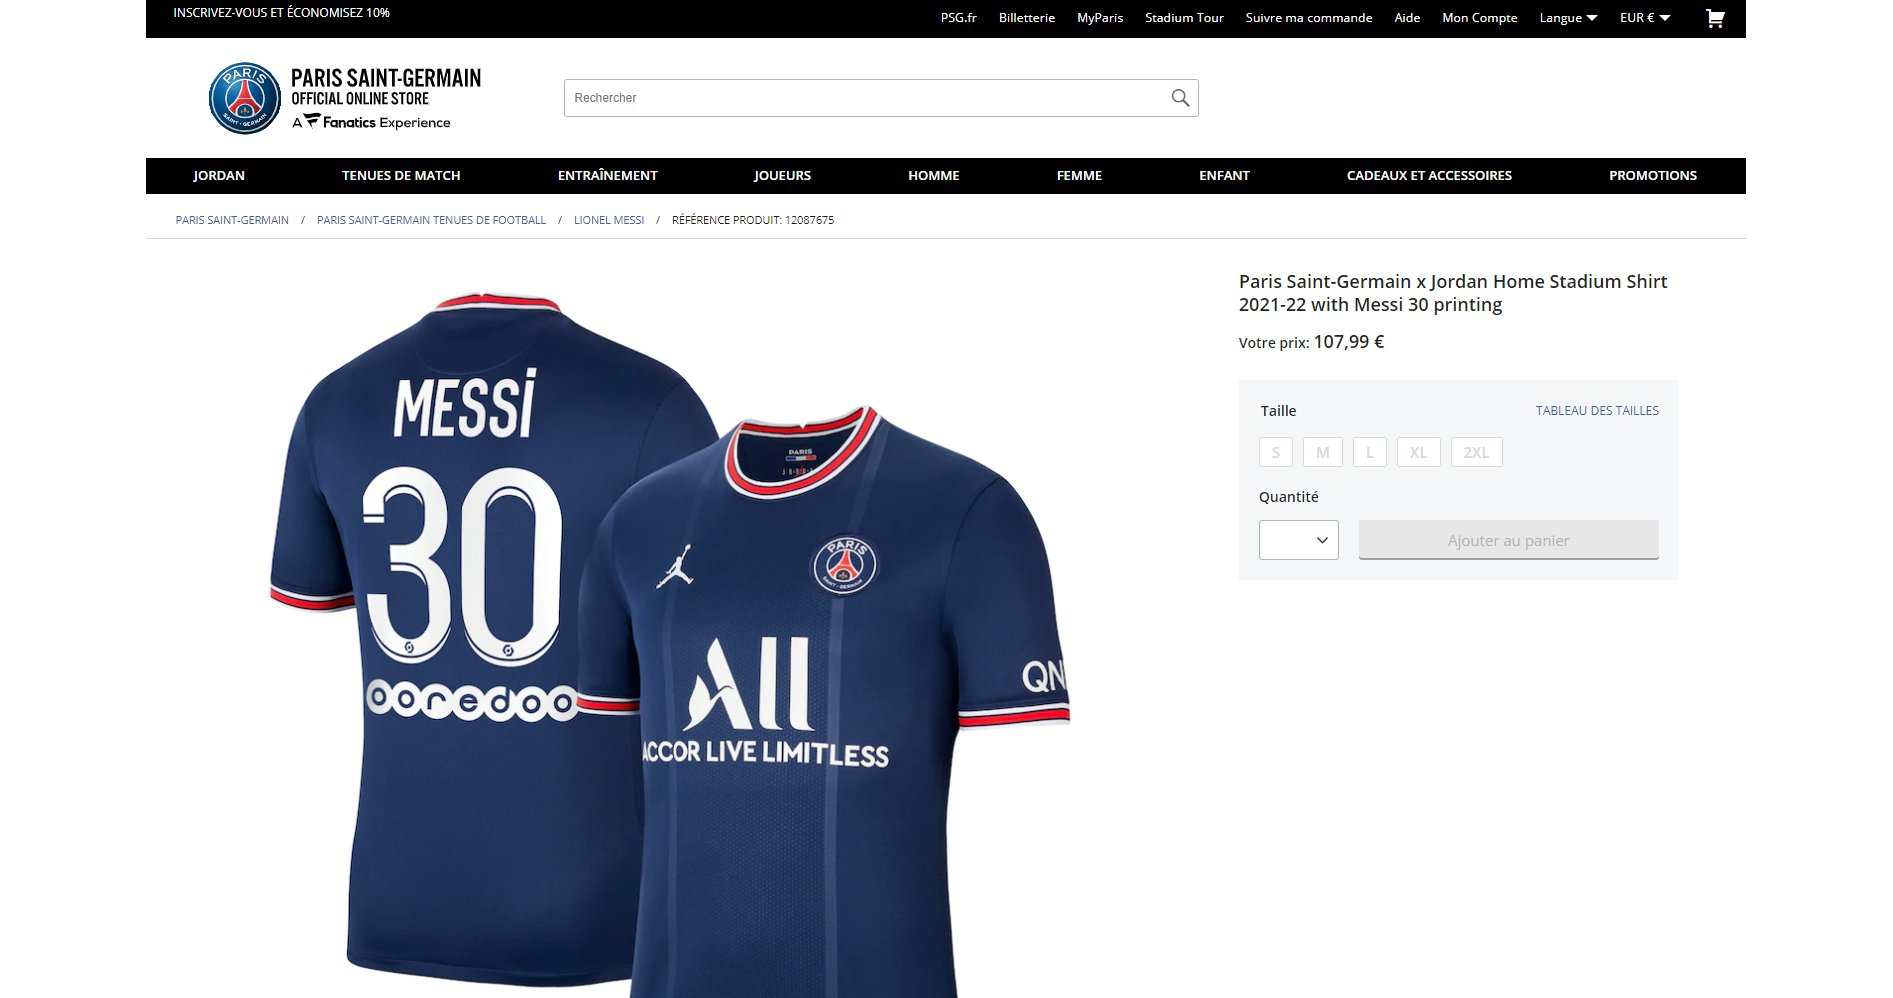 Lionel Messi's shirt sold out on Paris Saint-Germain's official online store in 30 minutes